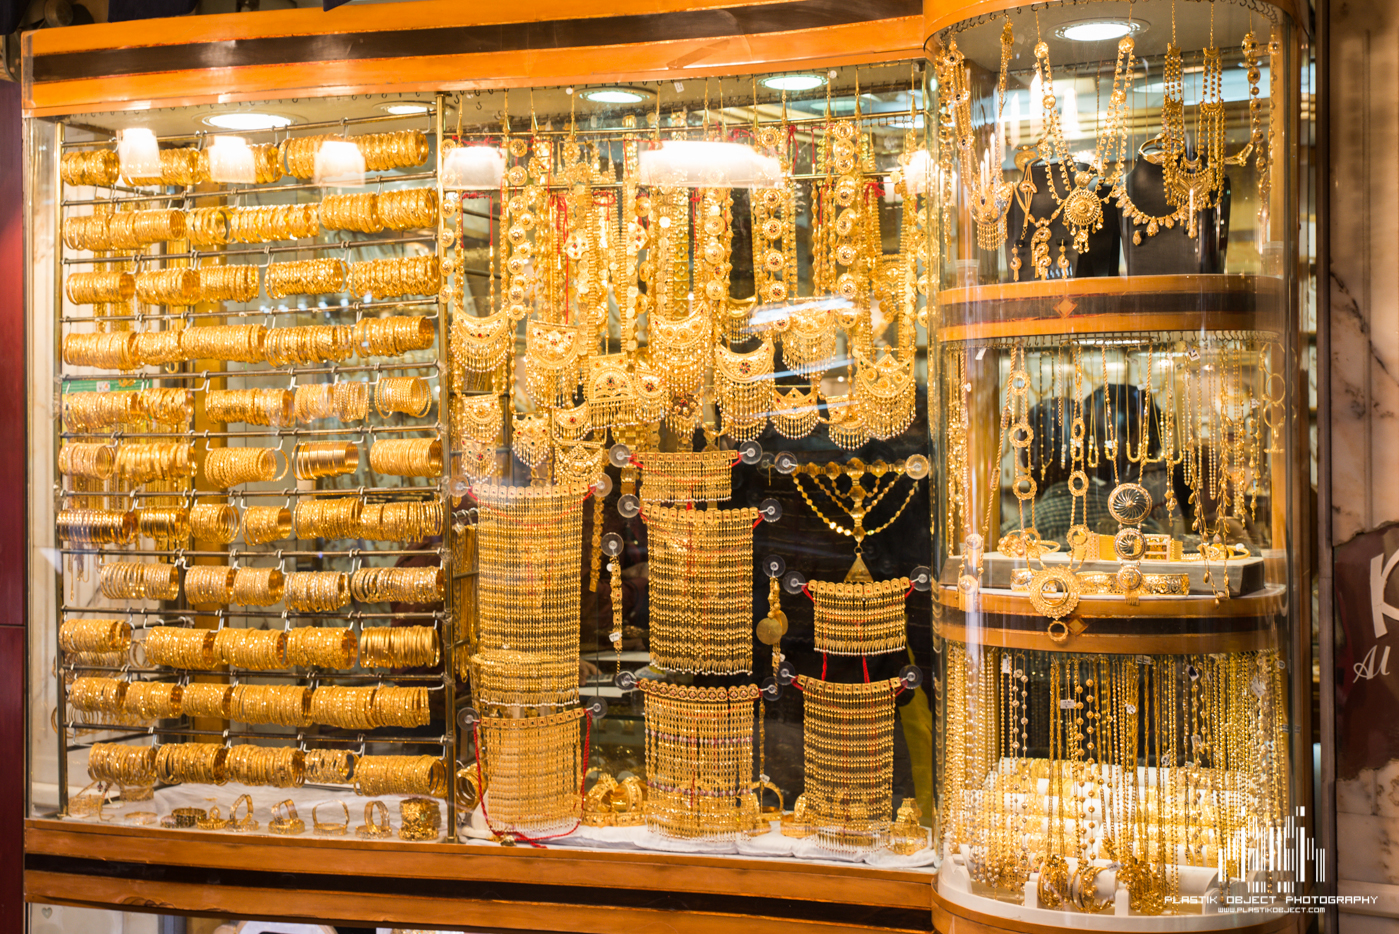 Rows and rows of store fronts that looked a lot like this, all showcasing their gold and jewelry.